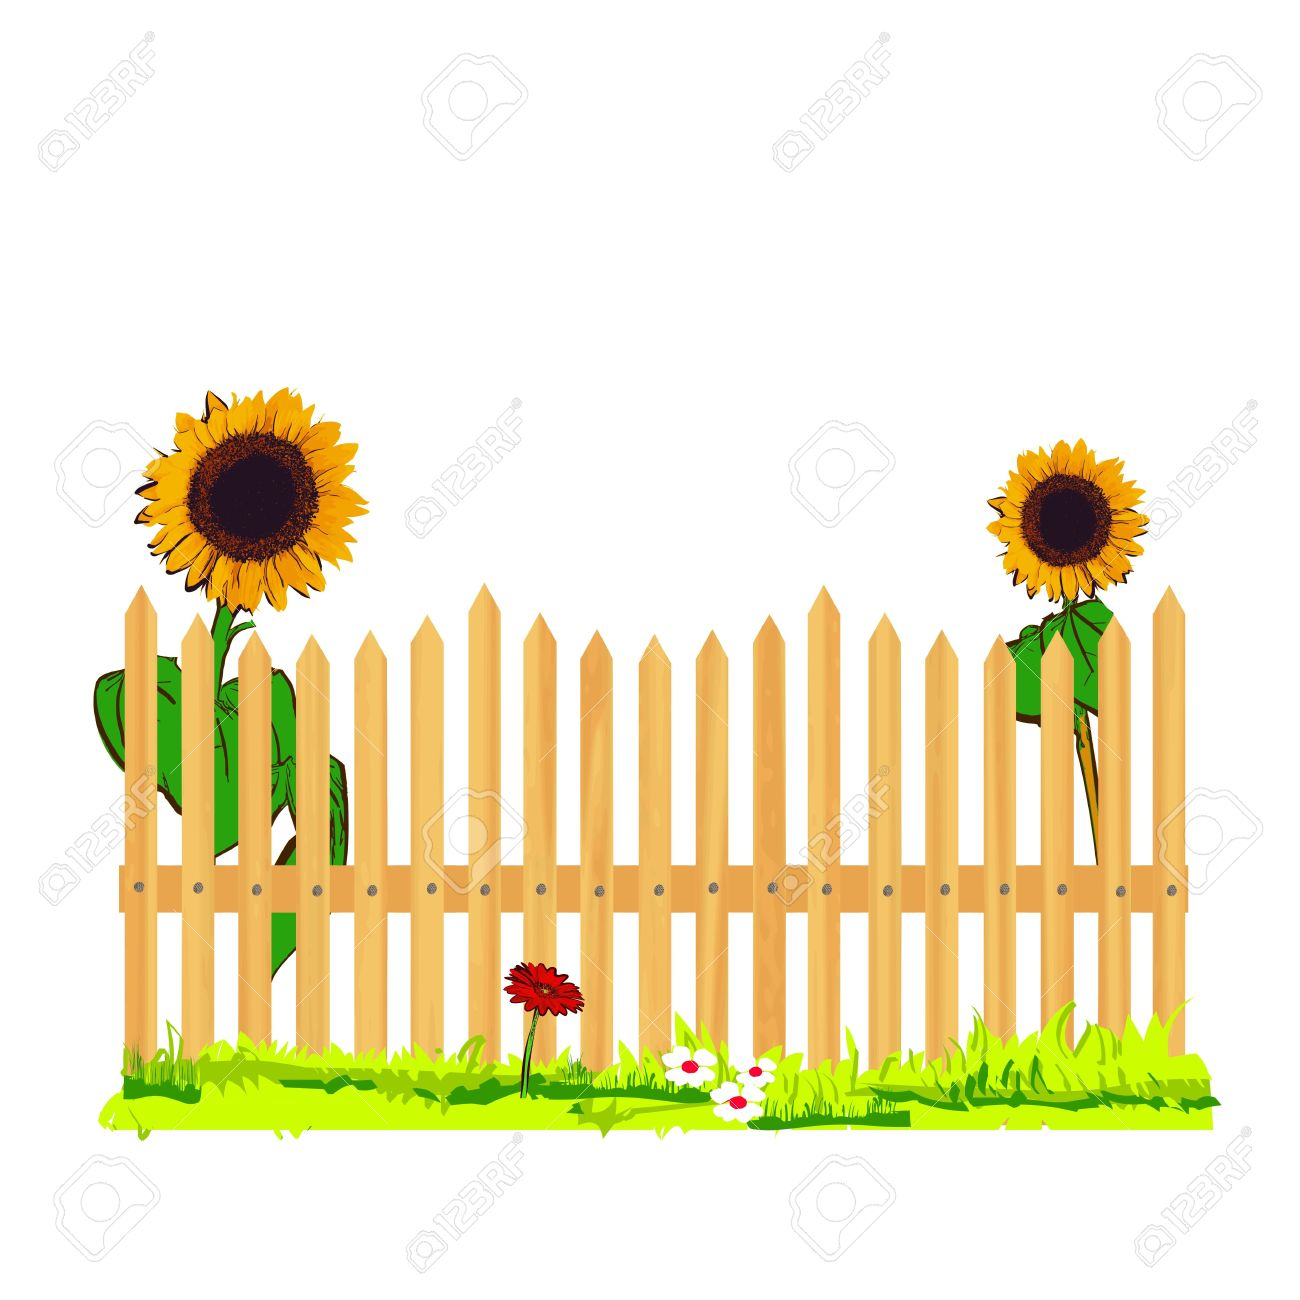 wooden fence and sunflowers - vector Stock Vector - 13285952